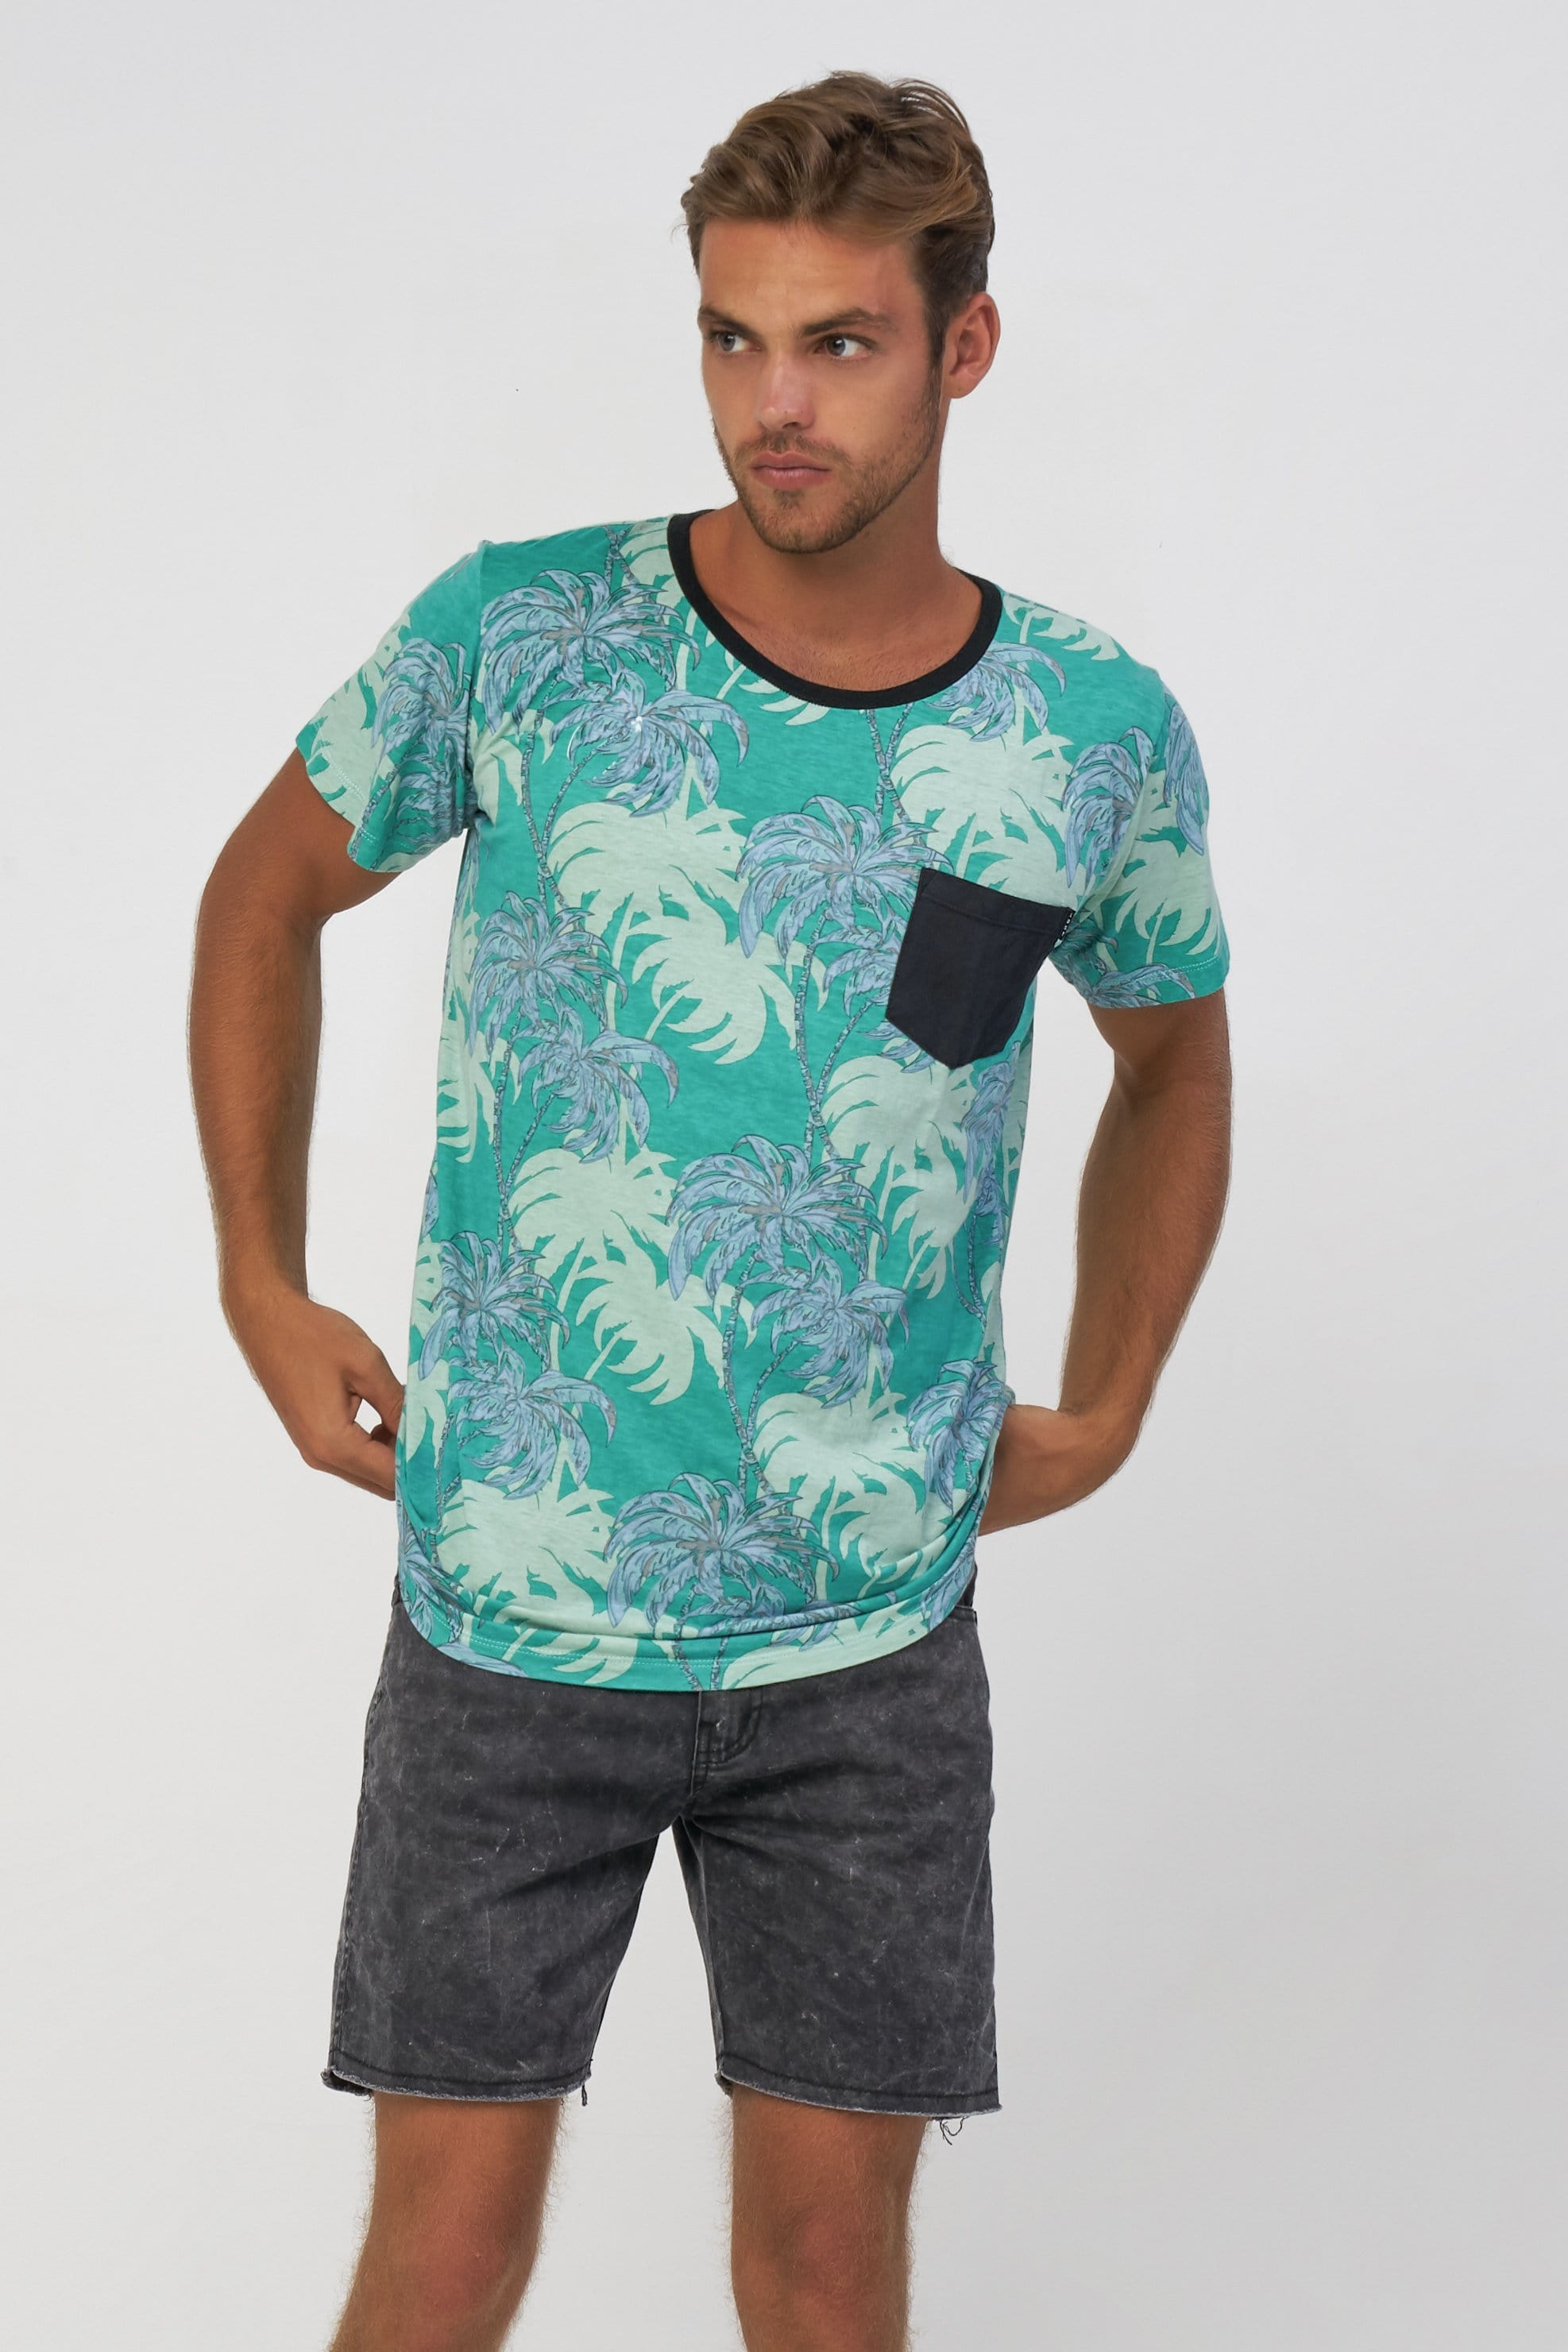 Ocean Palm Tee - Man T-Shirt - LOST IN PARADISE